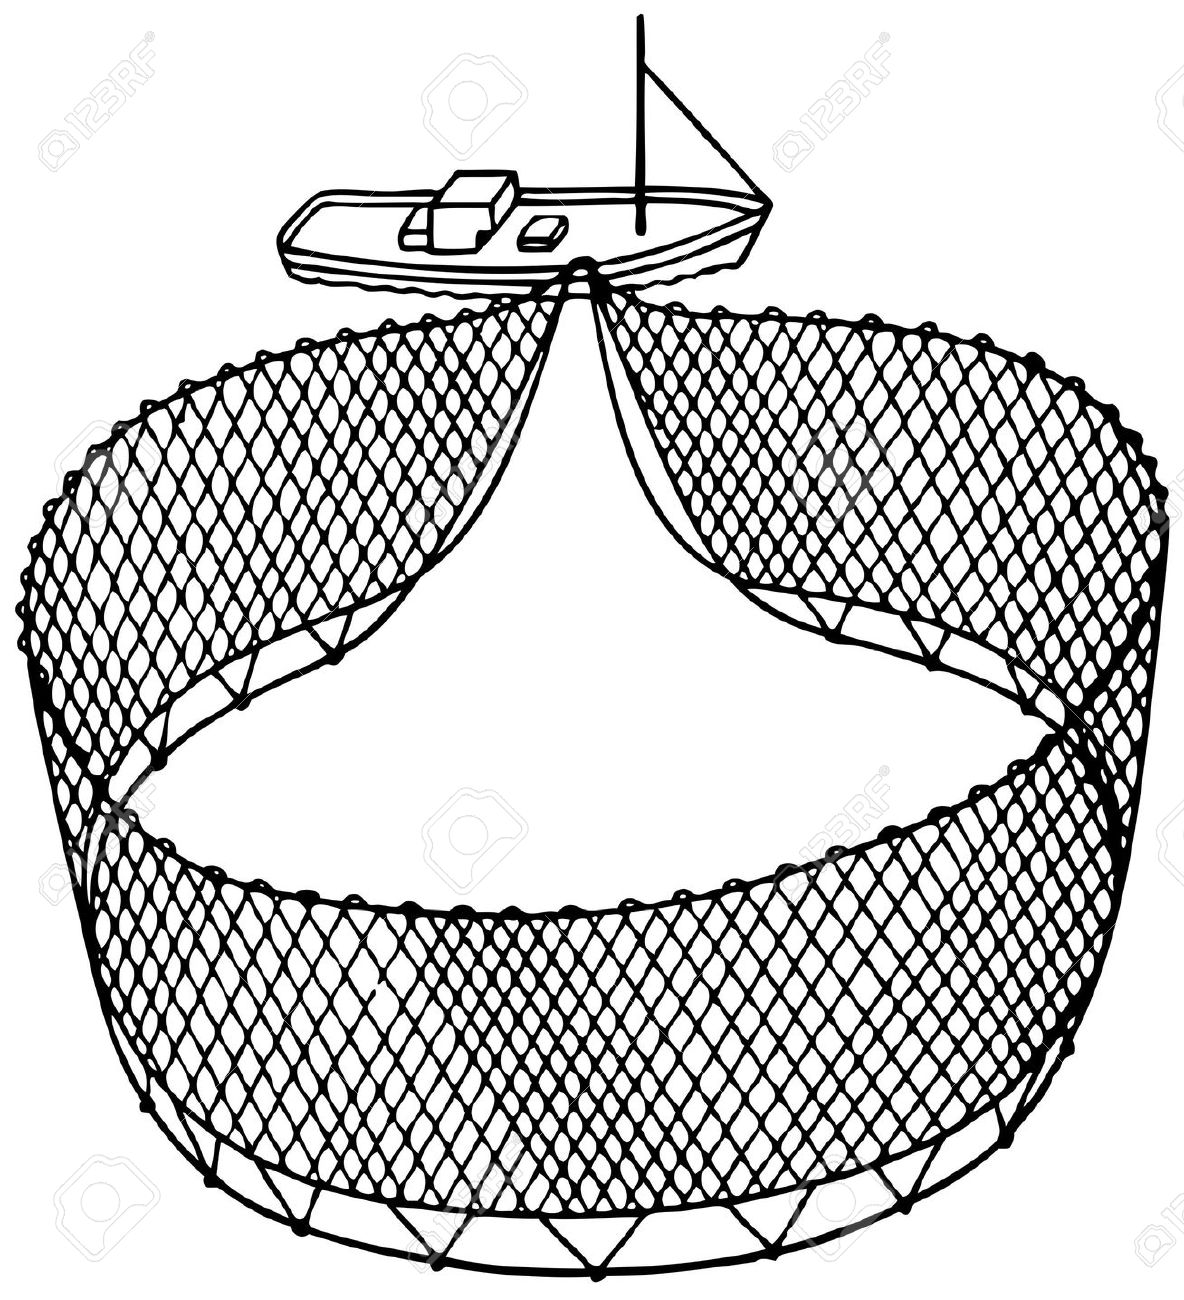 Fishing Net Clipart Black And White. Boa-Fishing Net Clipart Black And White. Boat fishnet on white .-13